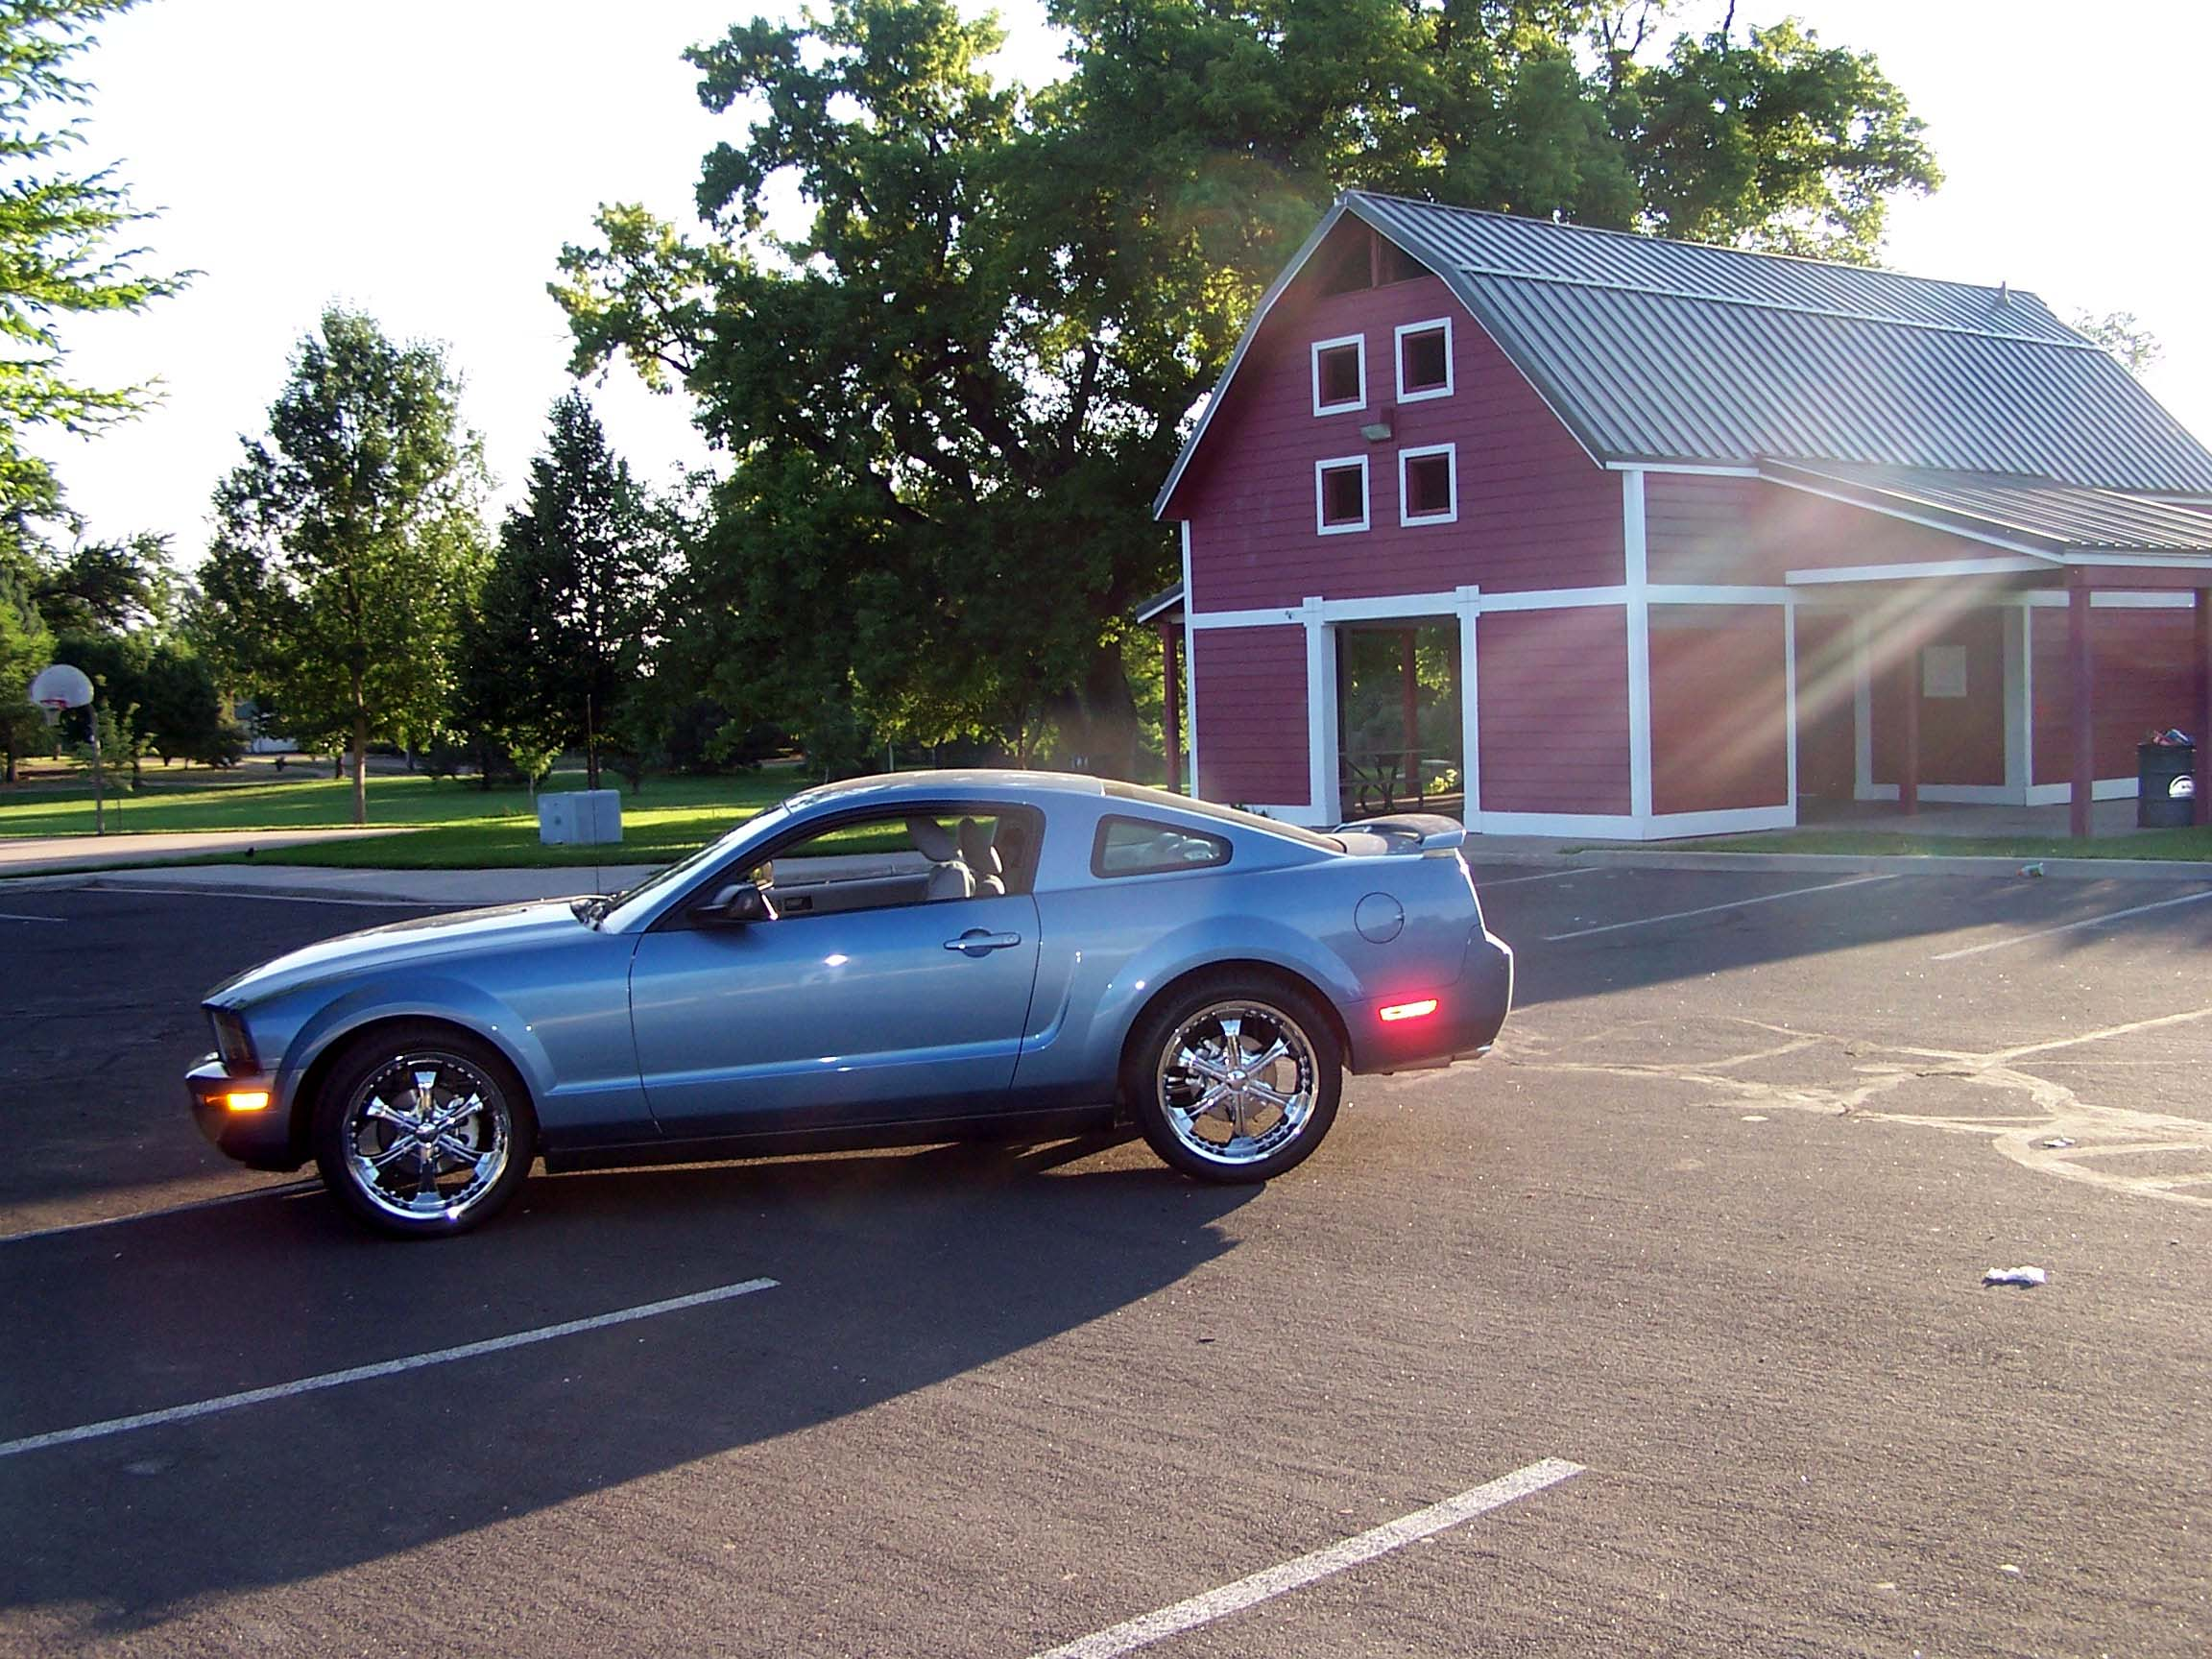 Click image for larger version  Name:Gonzo 06 Stang.JPG Views:77 Size:486.8 KB ID:26000